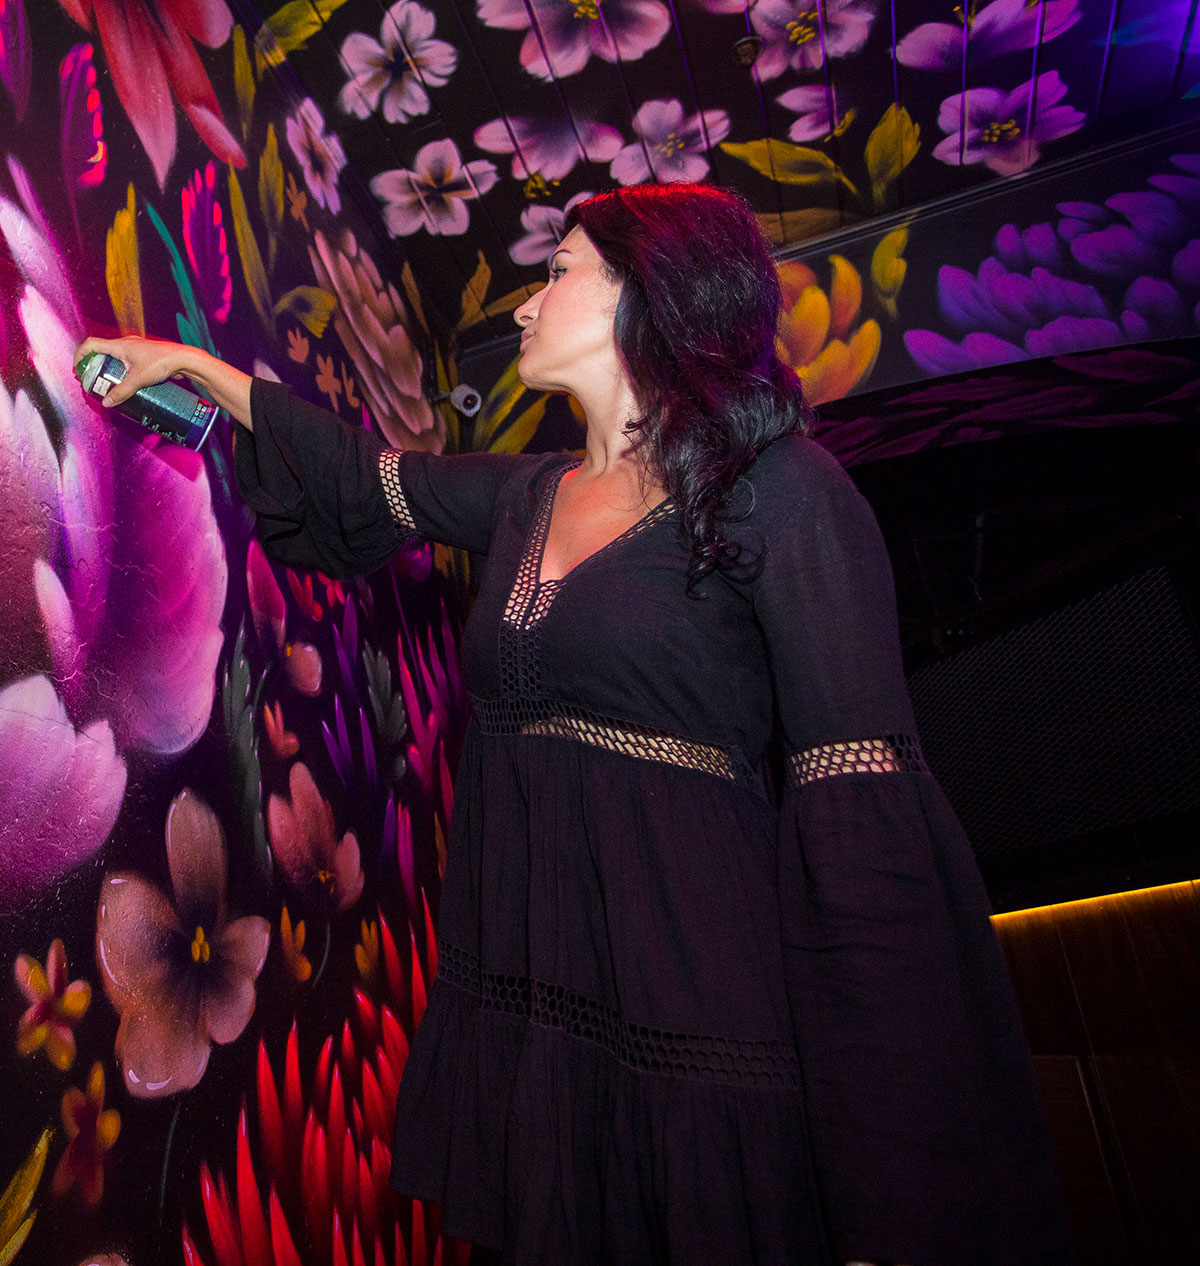 Street artist Amanda Valdes paints her way from local to global